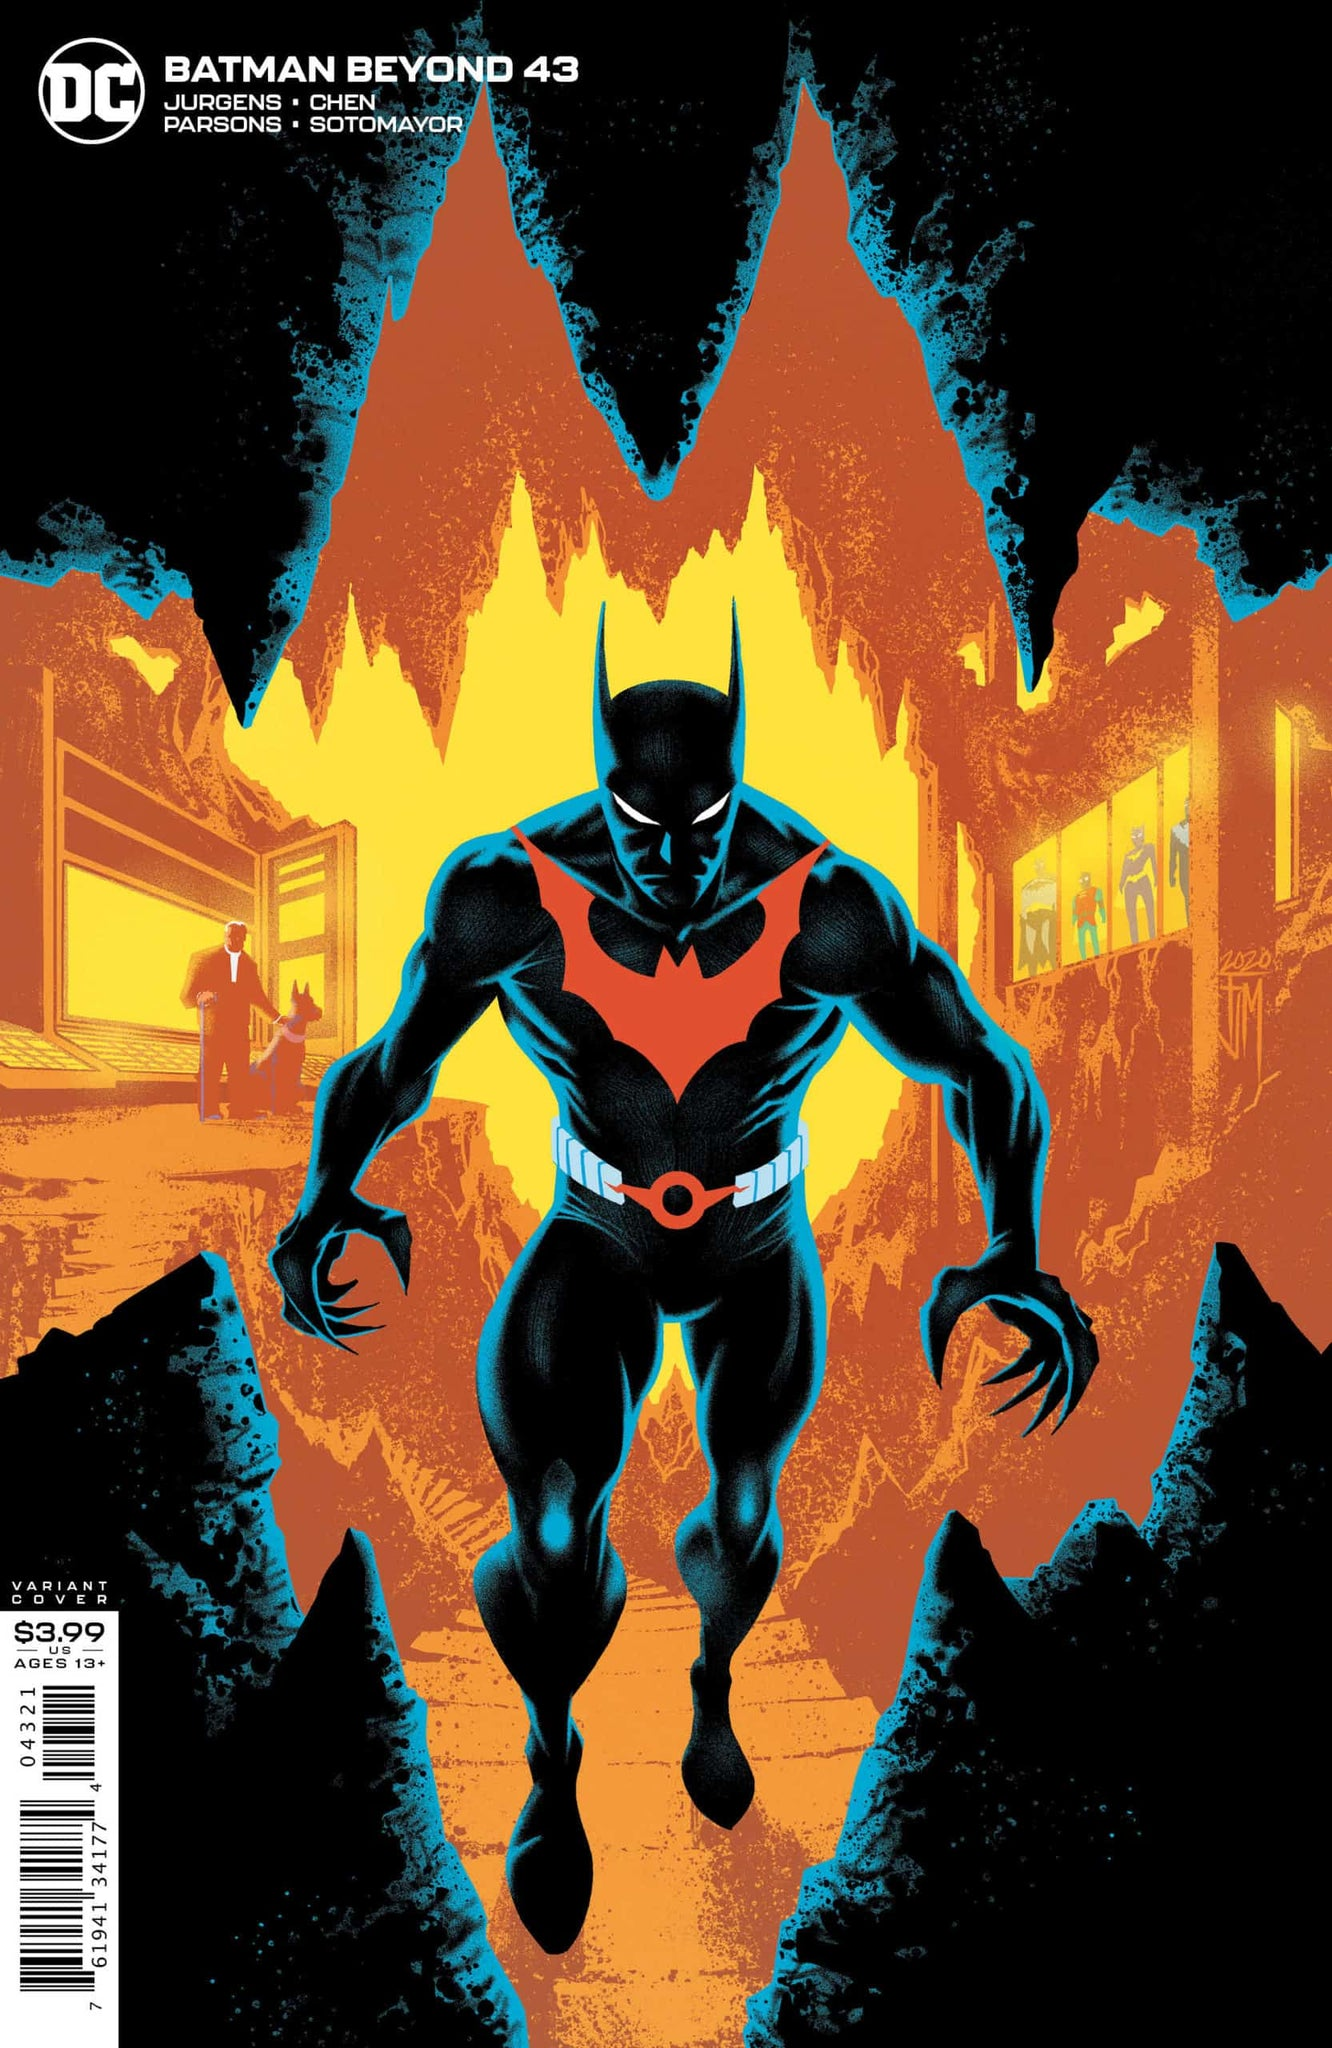 Batman Beyond 43 Variant Edition